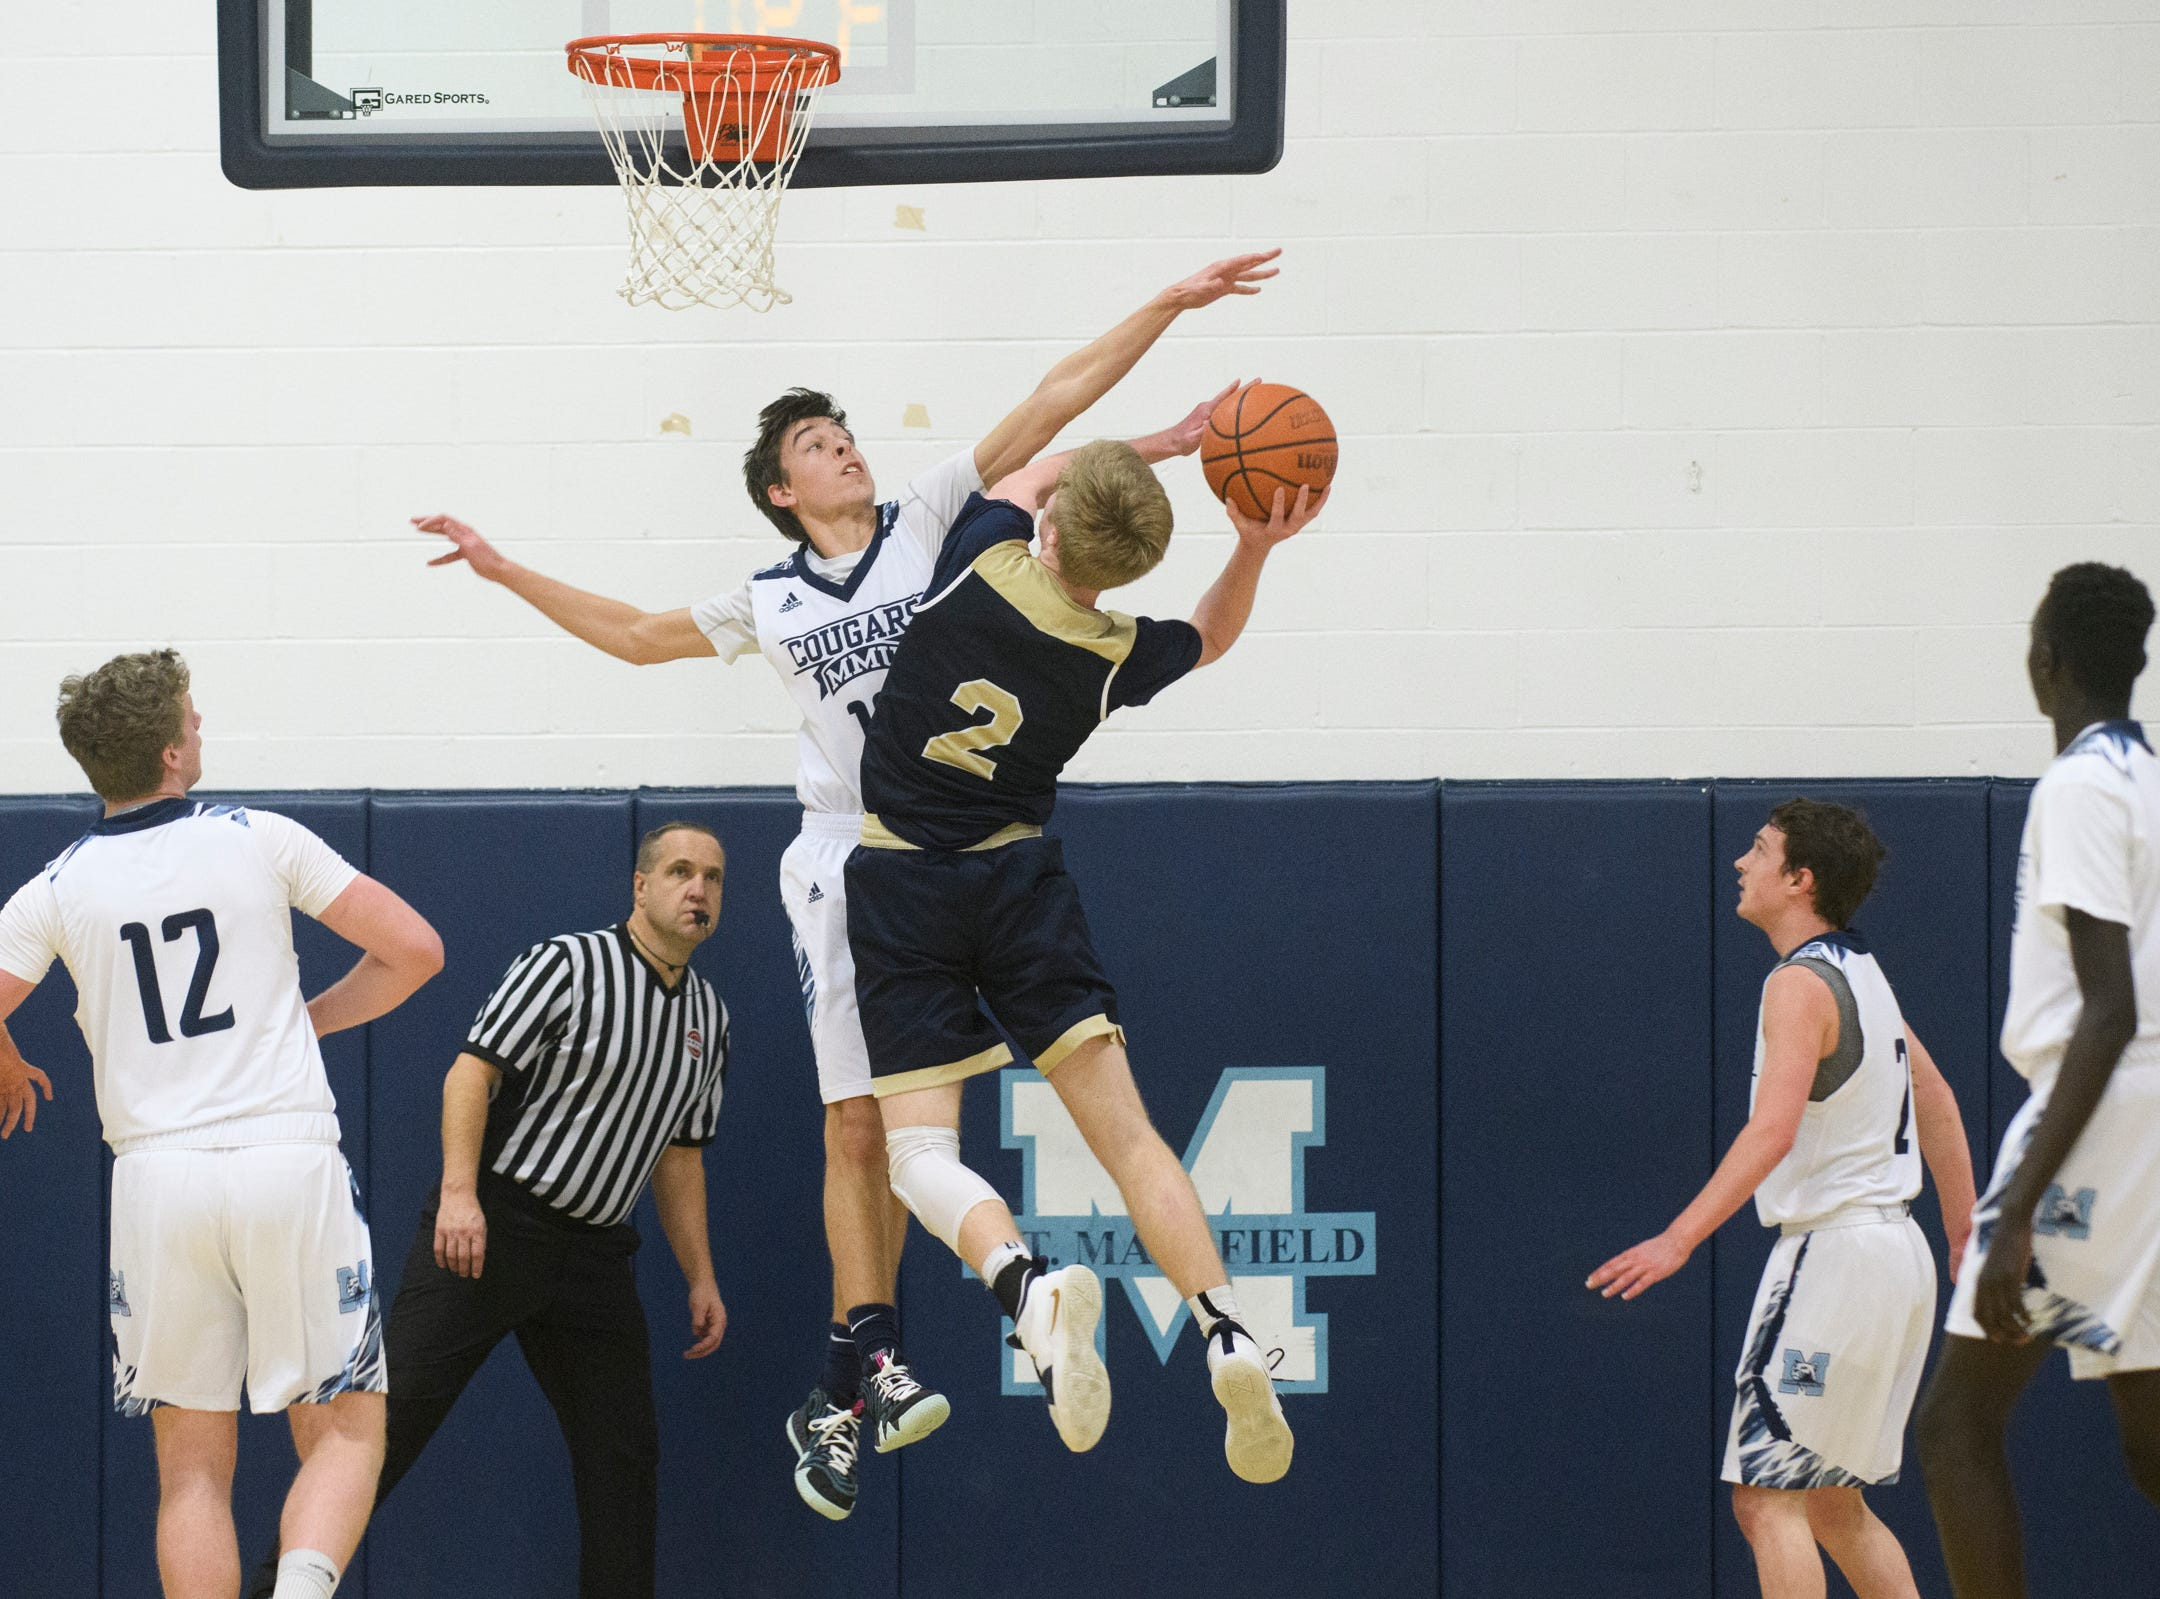 MMU's Becket Hill (13) blocks the shot by Essex's Stephen Astor (2) during the boys basketball game between the Essex Hornets and the Mount Mansfield Cougars at MMU High School on Wednesday night February 13, 2019 in Jericho, Vermont.